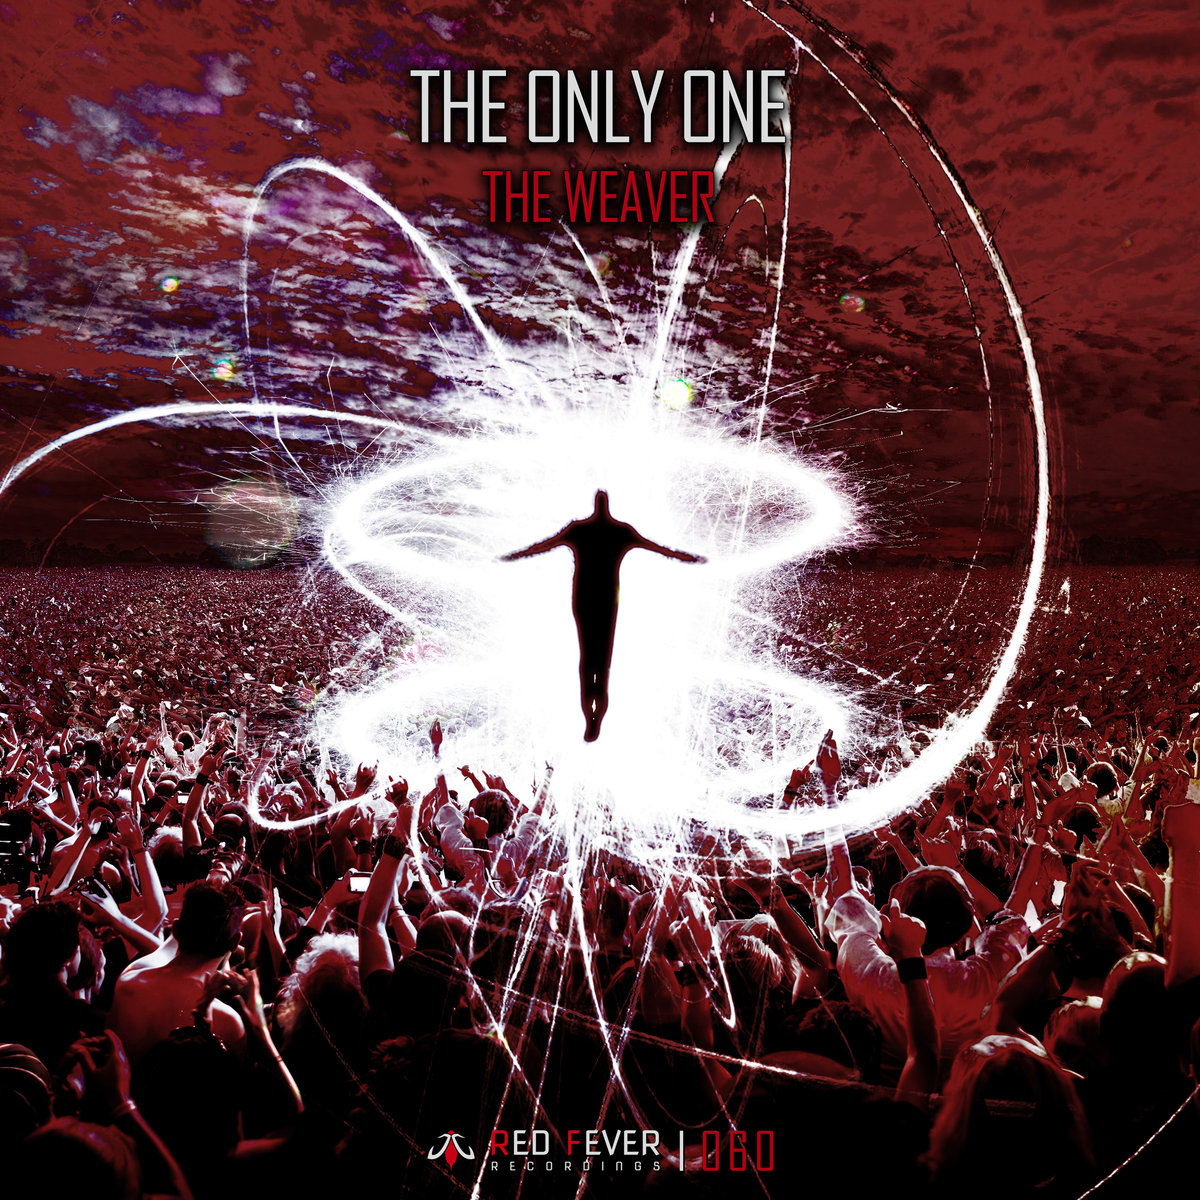 The Weaver - The Only One @ 'The Only One' album (electronic, the weaver)